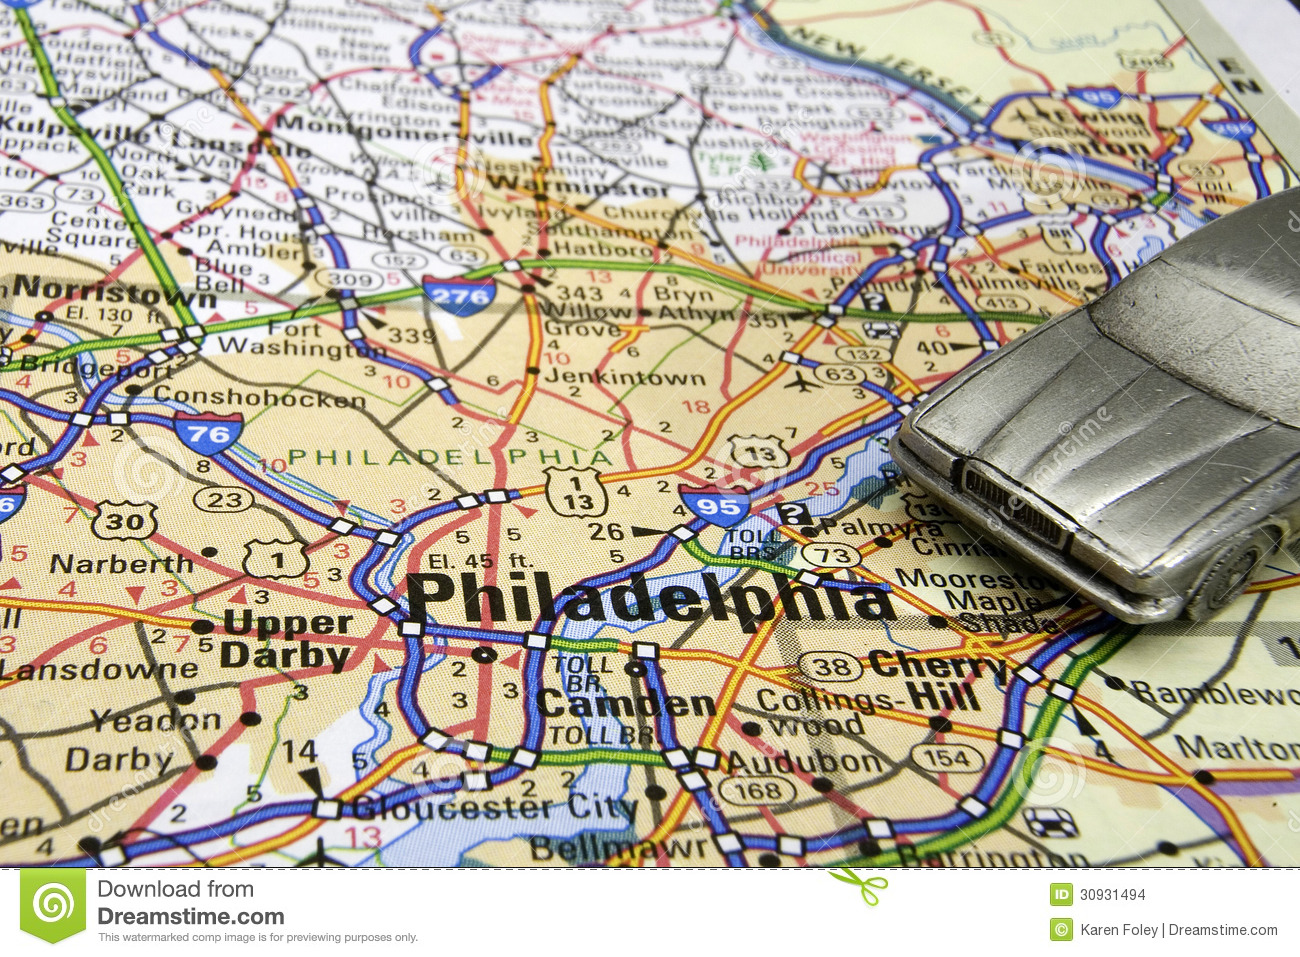 Image of: 430 Pennsylvania Map Photos Free Royalty Free Stock Photos From Dreamstime